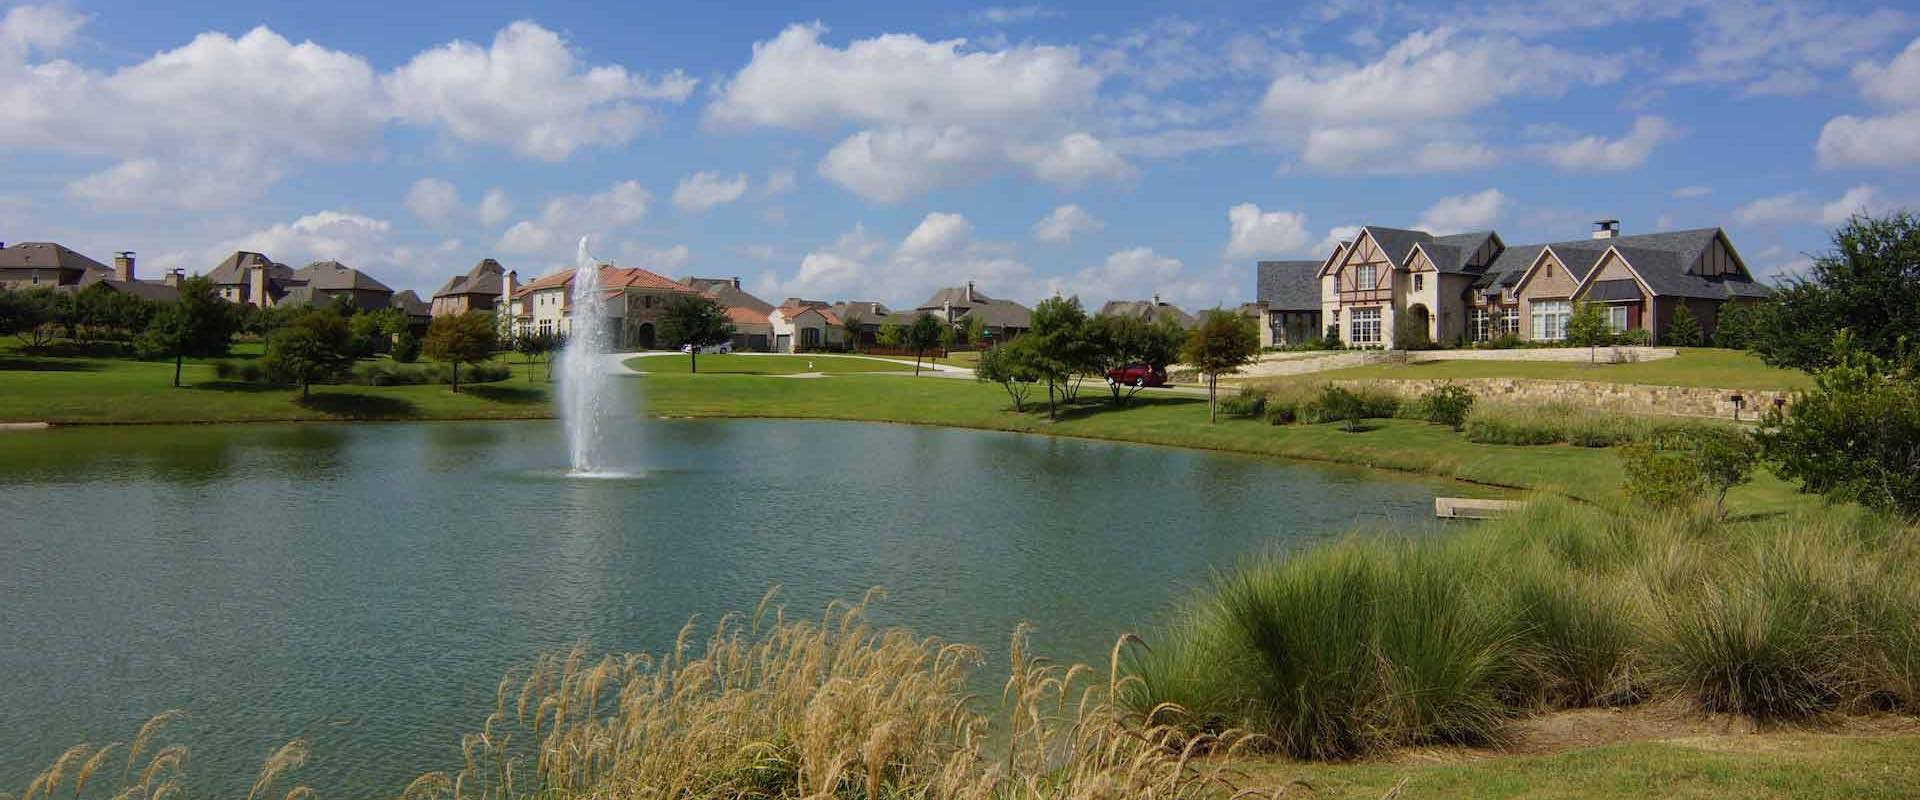 Homes for sale in Whitley Place along a pond